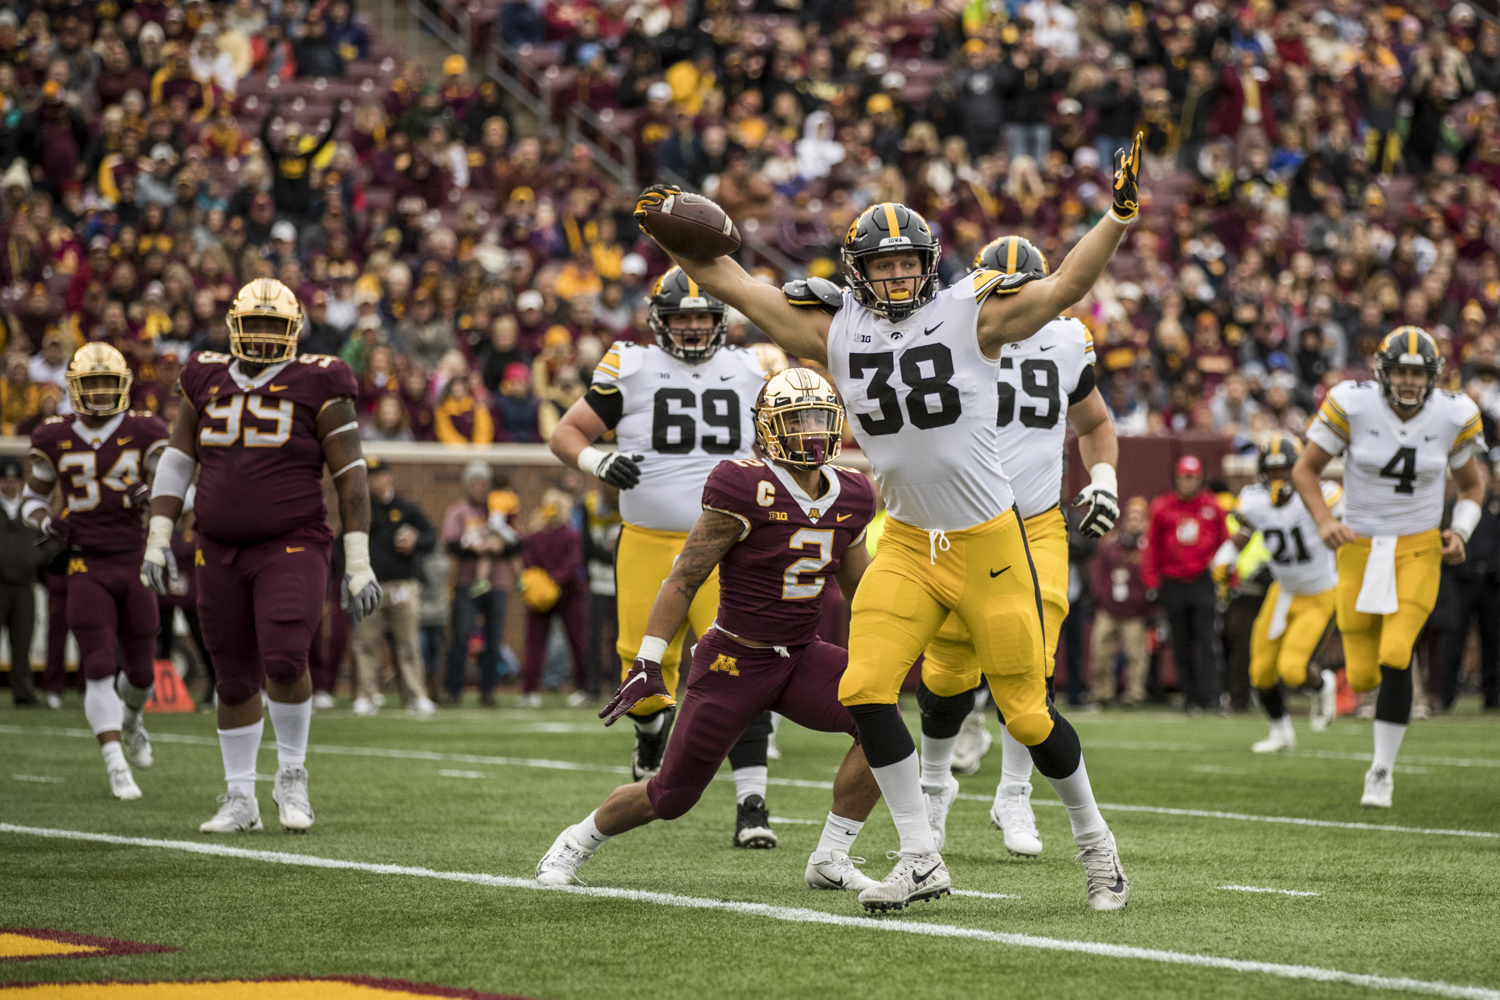 Iowa tight end T.J. Hockenson celebrates after catching a touchdown pass during Iowa's game against Minnesota at TCF Bank Stadium on Saturday, October 6, 2018.